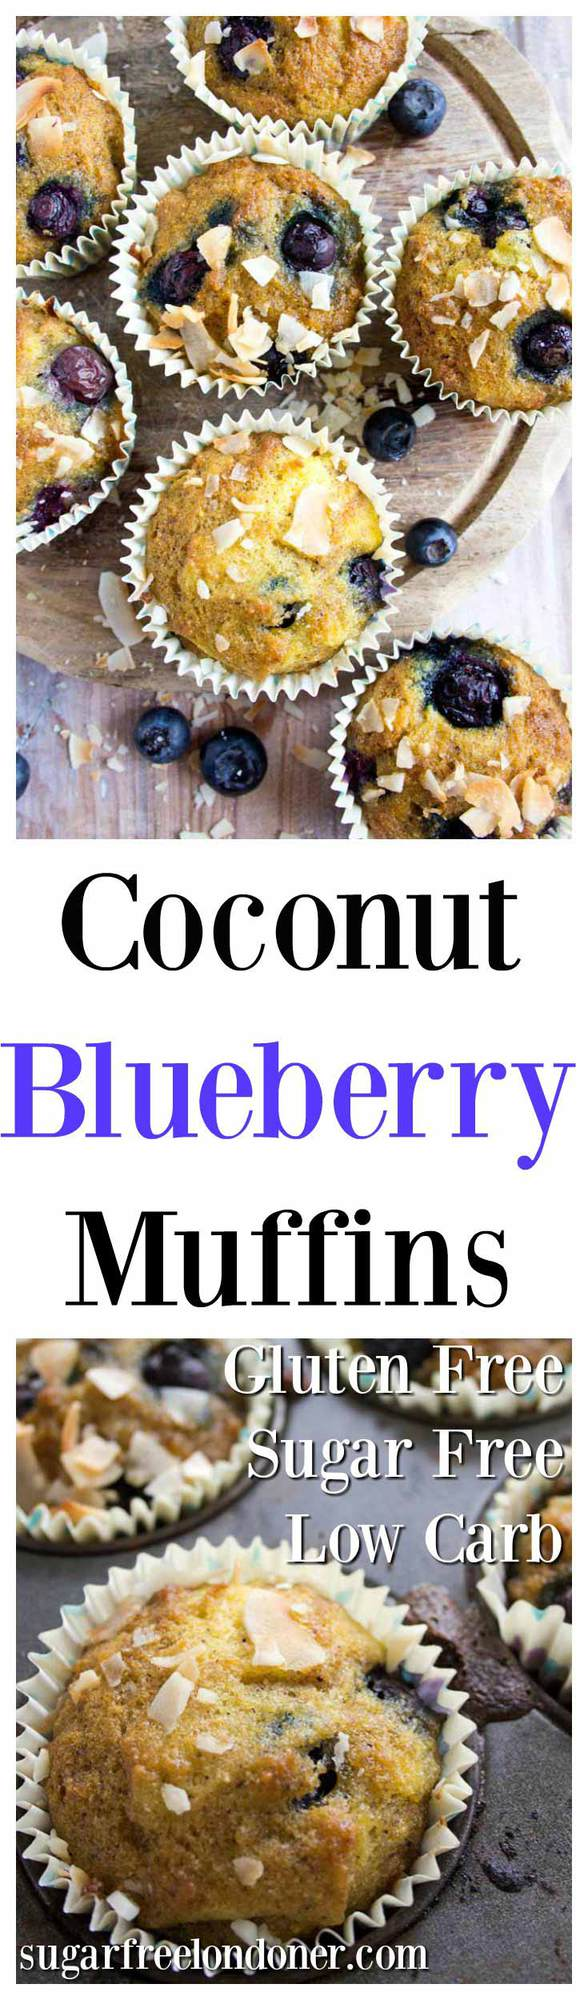 Light and golden low carb blueberry coconut flour muffins - perfectly moist with fruity blueberry bursts. Enjoy as an on-the-go breakfast or as a satisfying snack. Gluten free, Keto and sugar free. #coconutflour #lowcarbmuffins #coconutflourmuffins